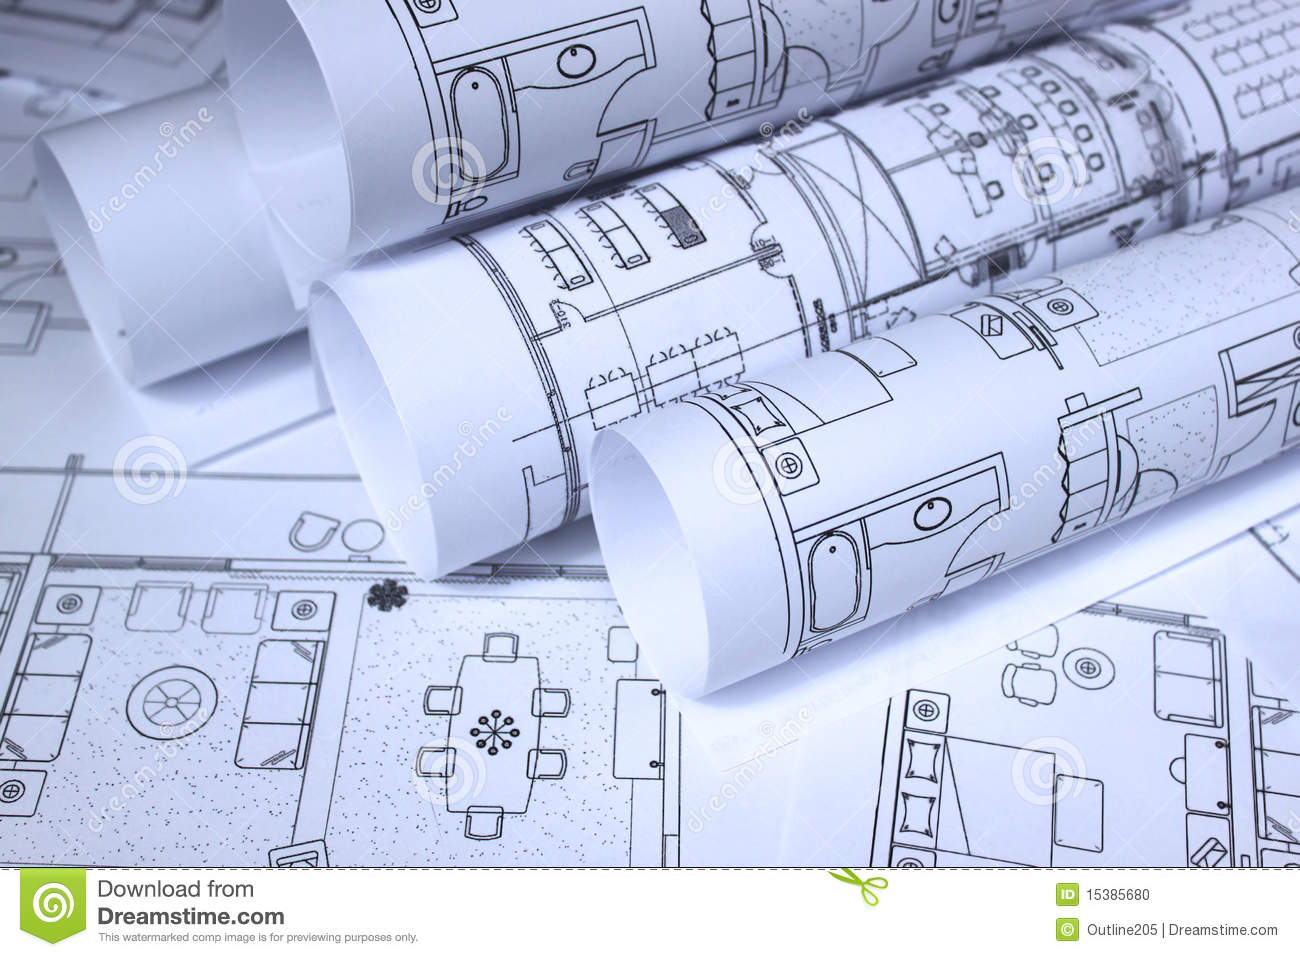 Blueprints For Home, Office Stock Photo - Image of builder ... on plans for garage, plans for sofas, plans for office desk, plans for wall units, plans for great room, plans for laundry rooms, plans for education, plans for powder room, plans for bar,